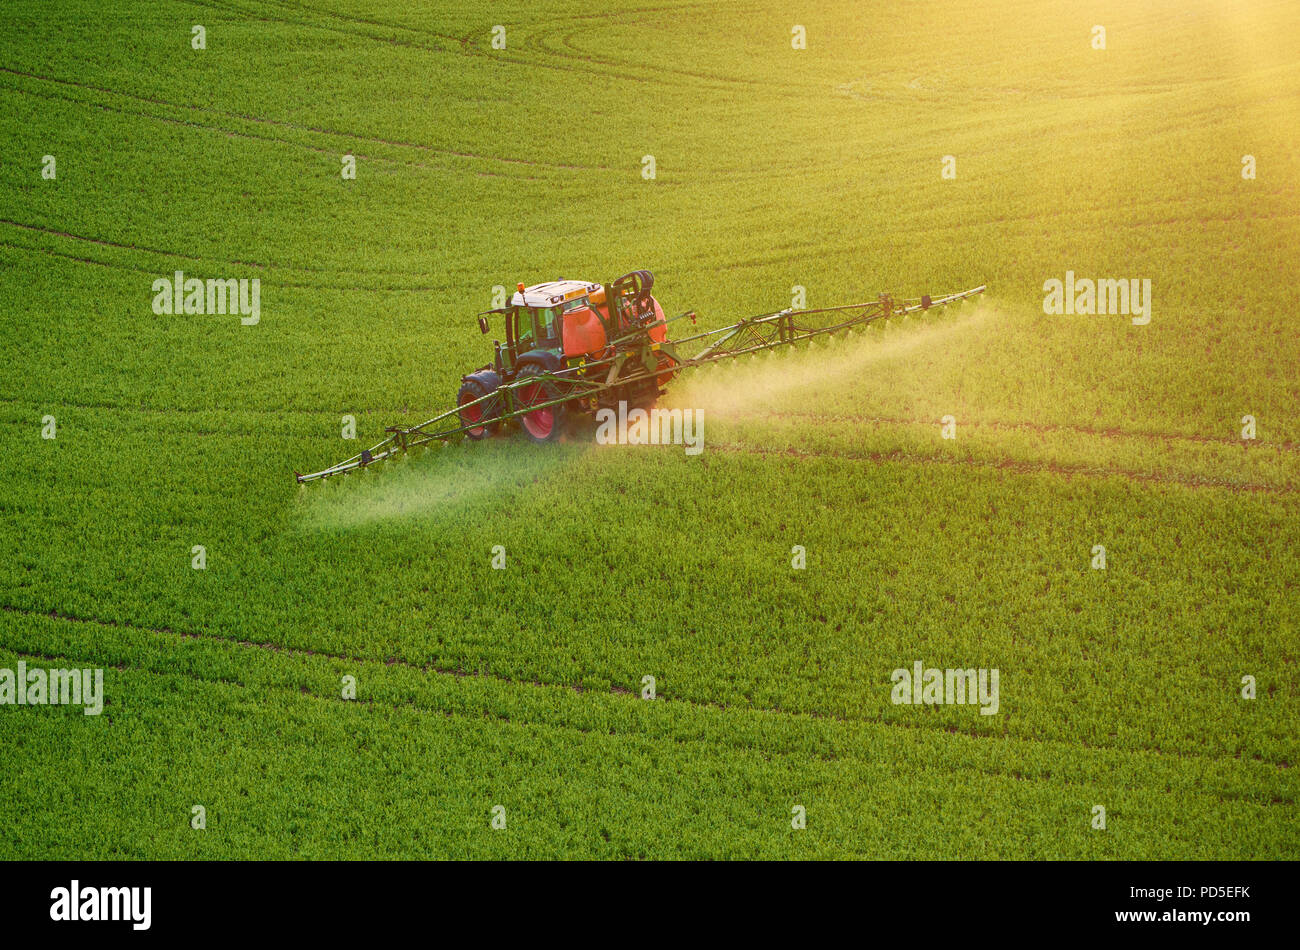 Farm machinery spraying insecticide to the green field, agricultural natural seasonal spring background Stock Photo